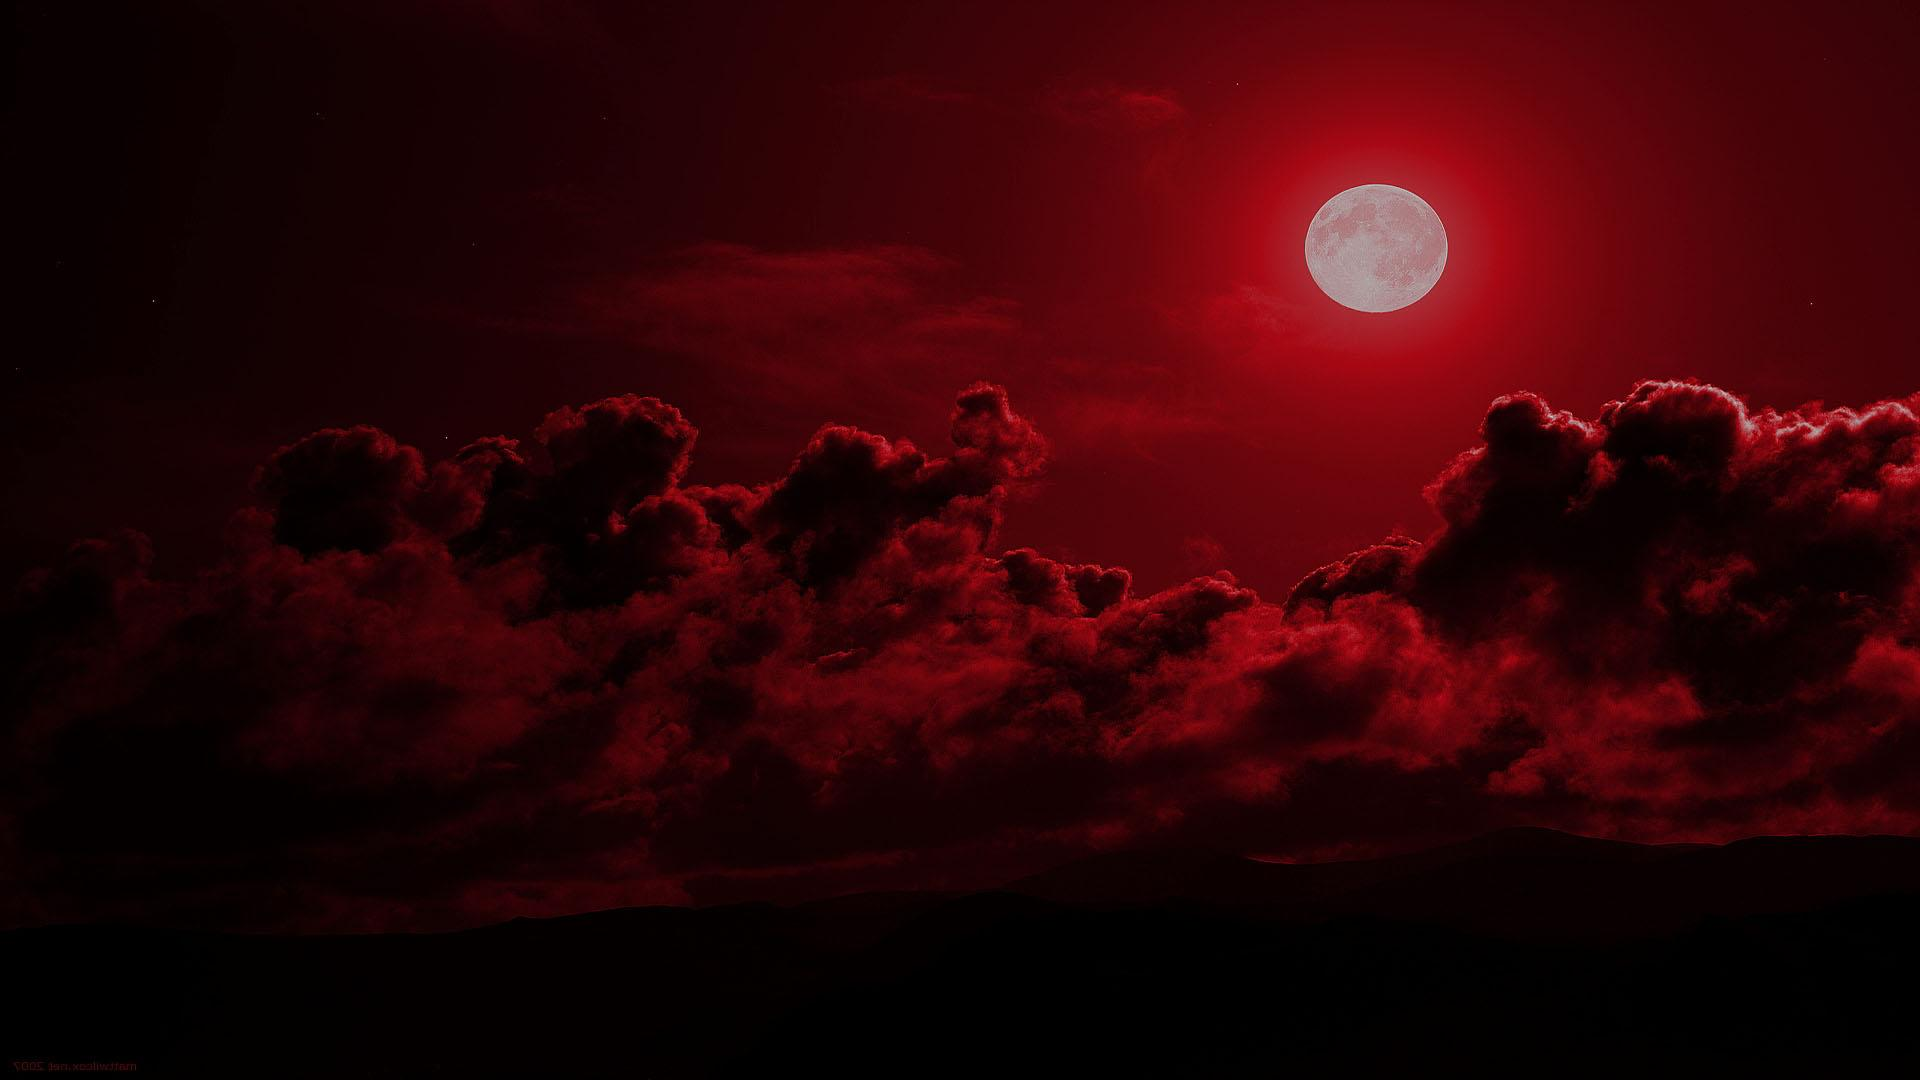 Tags R Wallpapers Reddit Nature Outdoors Dawn Dusk Red Sky Sunrise Sunset Night Cloud Weather Cumulus Astronomy Outer Space Universe Full Moon